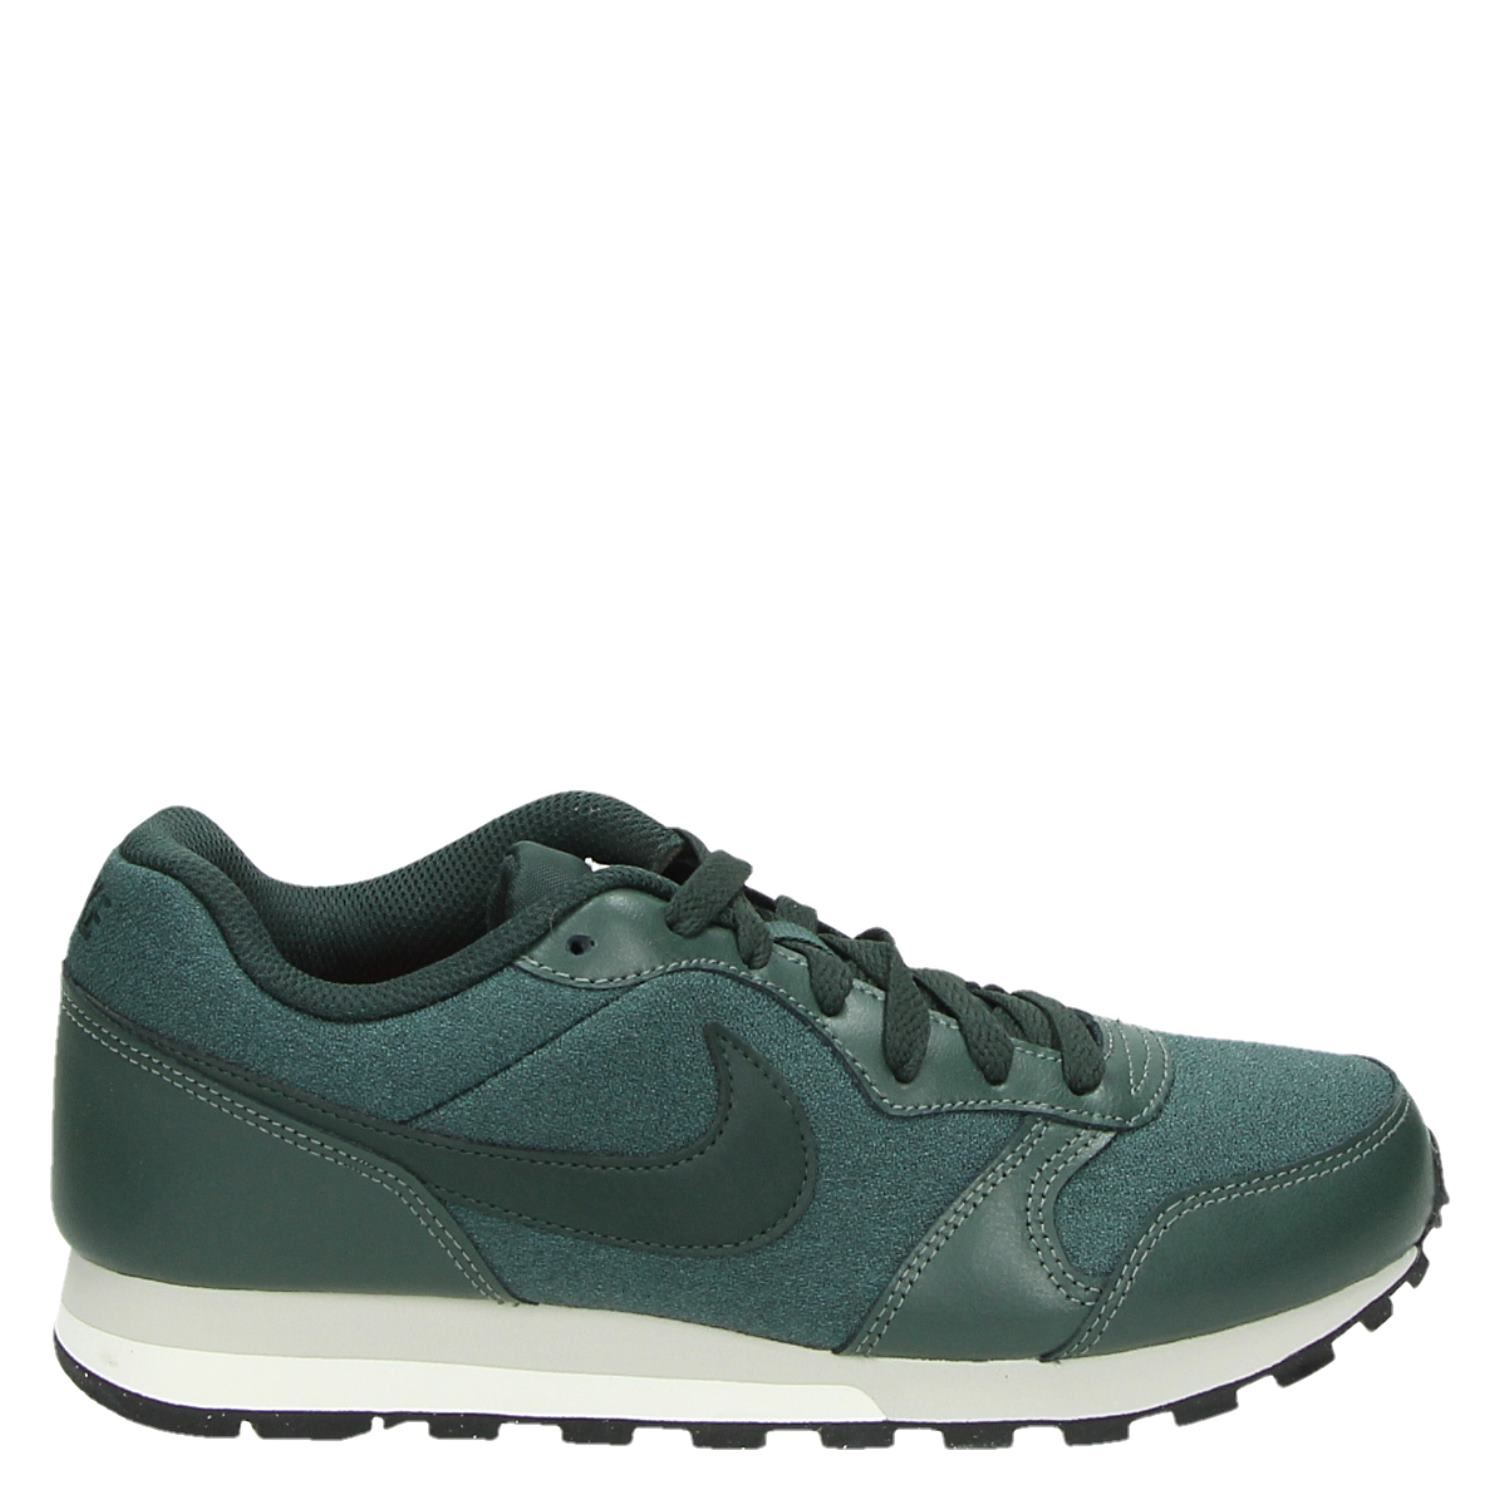 nike md runner 2 dames lage sneakers groen. Black Bedroom Furniture Sets. Home Design Ideas